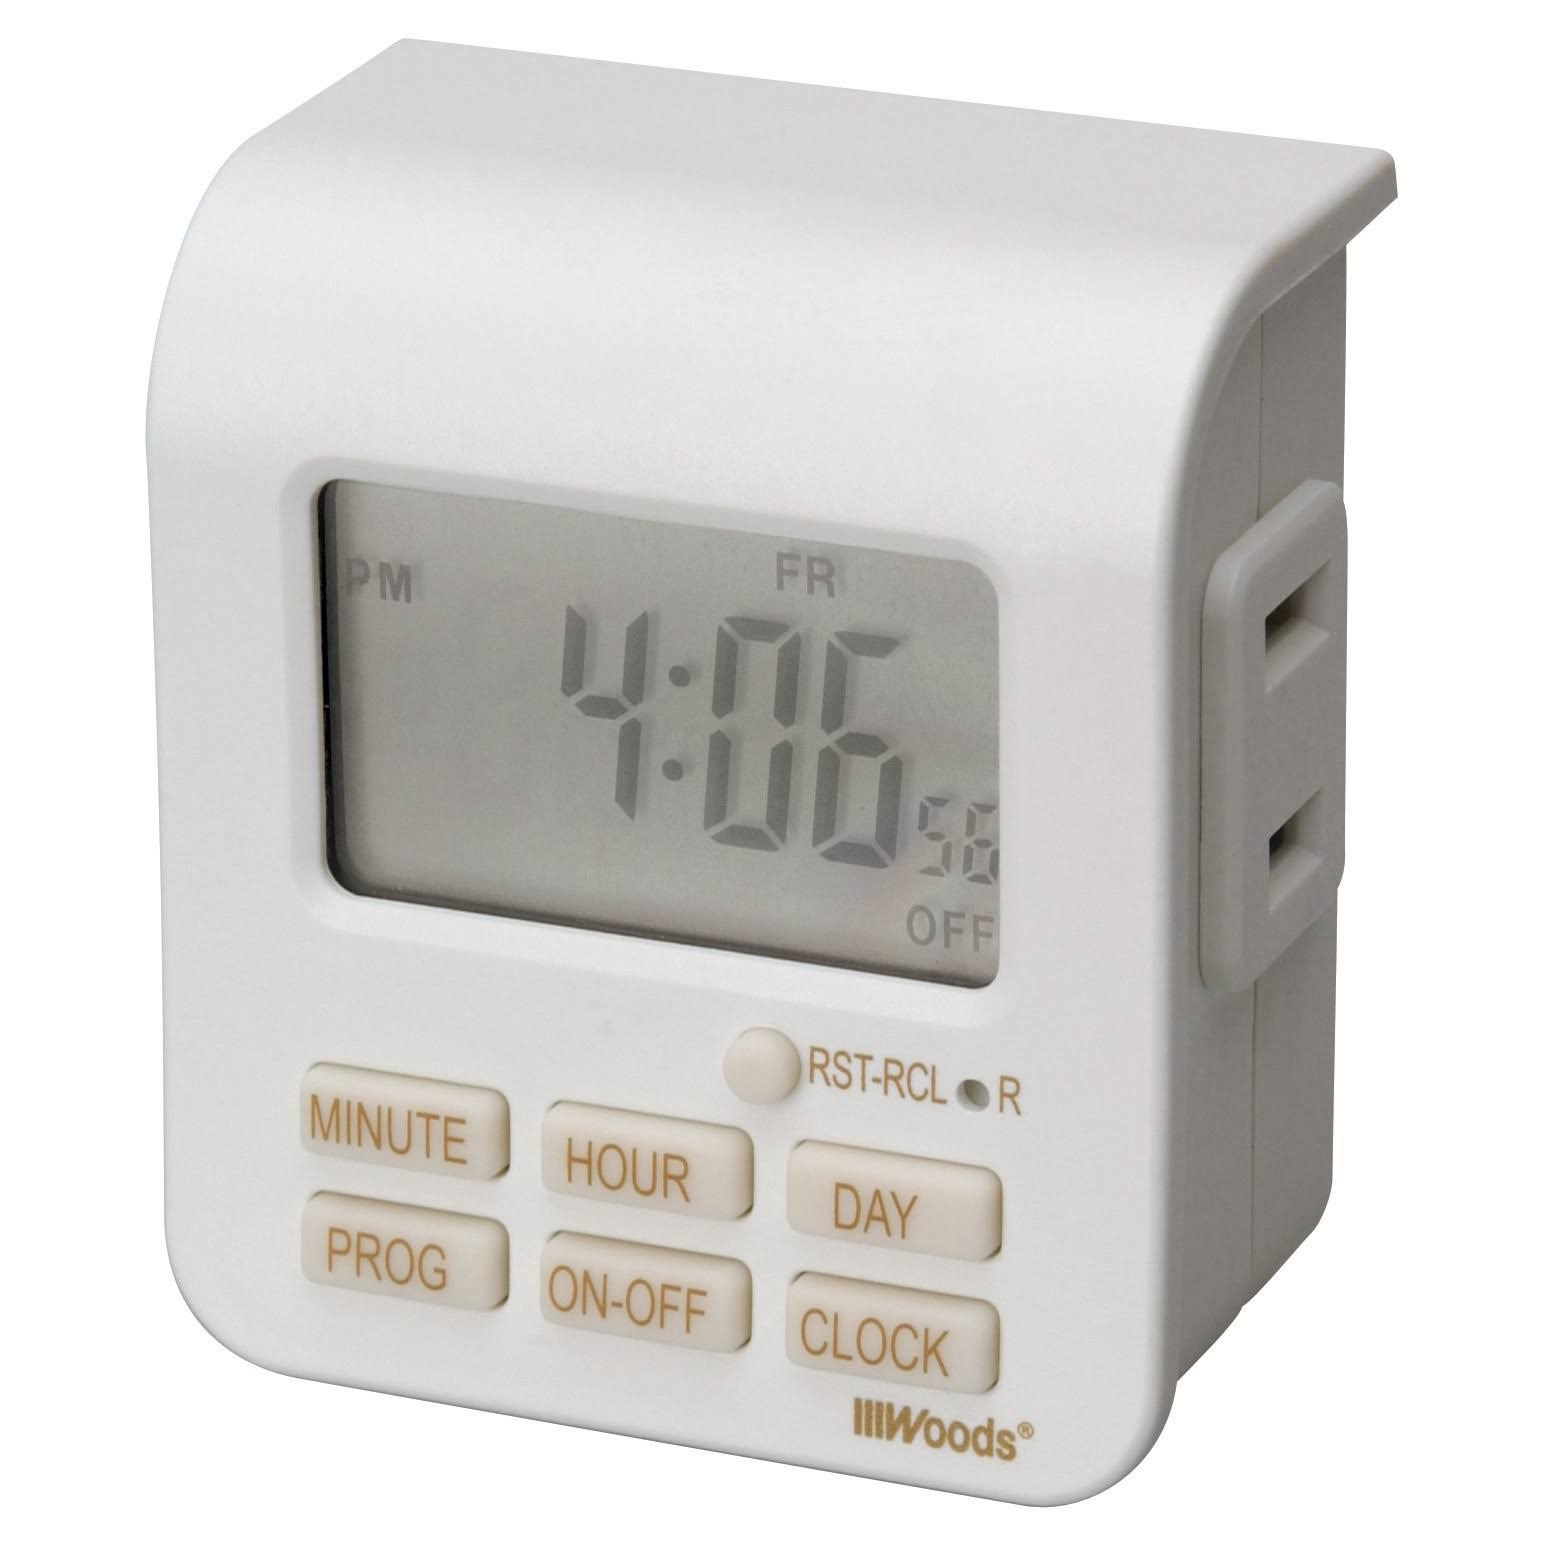 Woods 7-Day Digital Indoor Lamp Timer - White